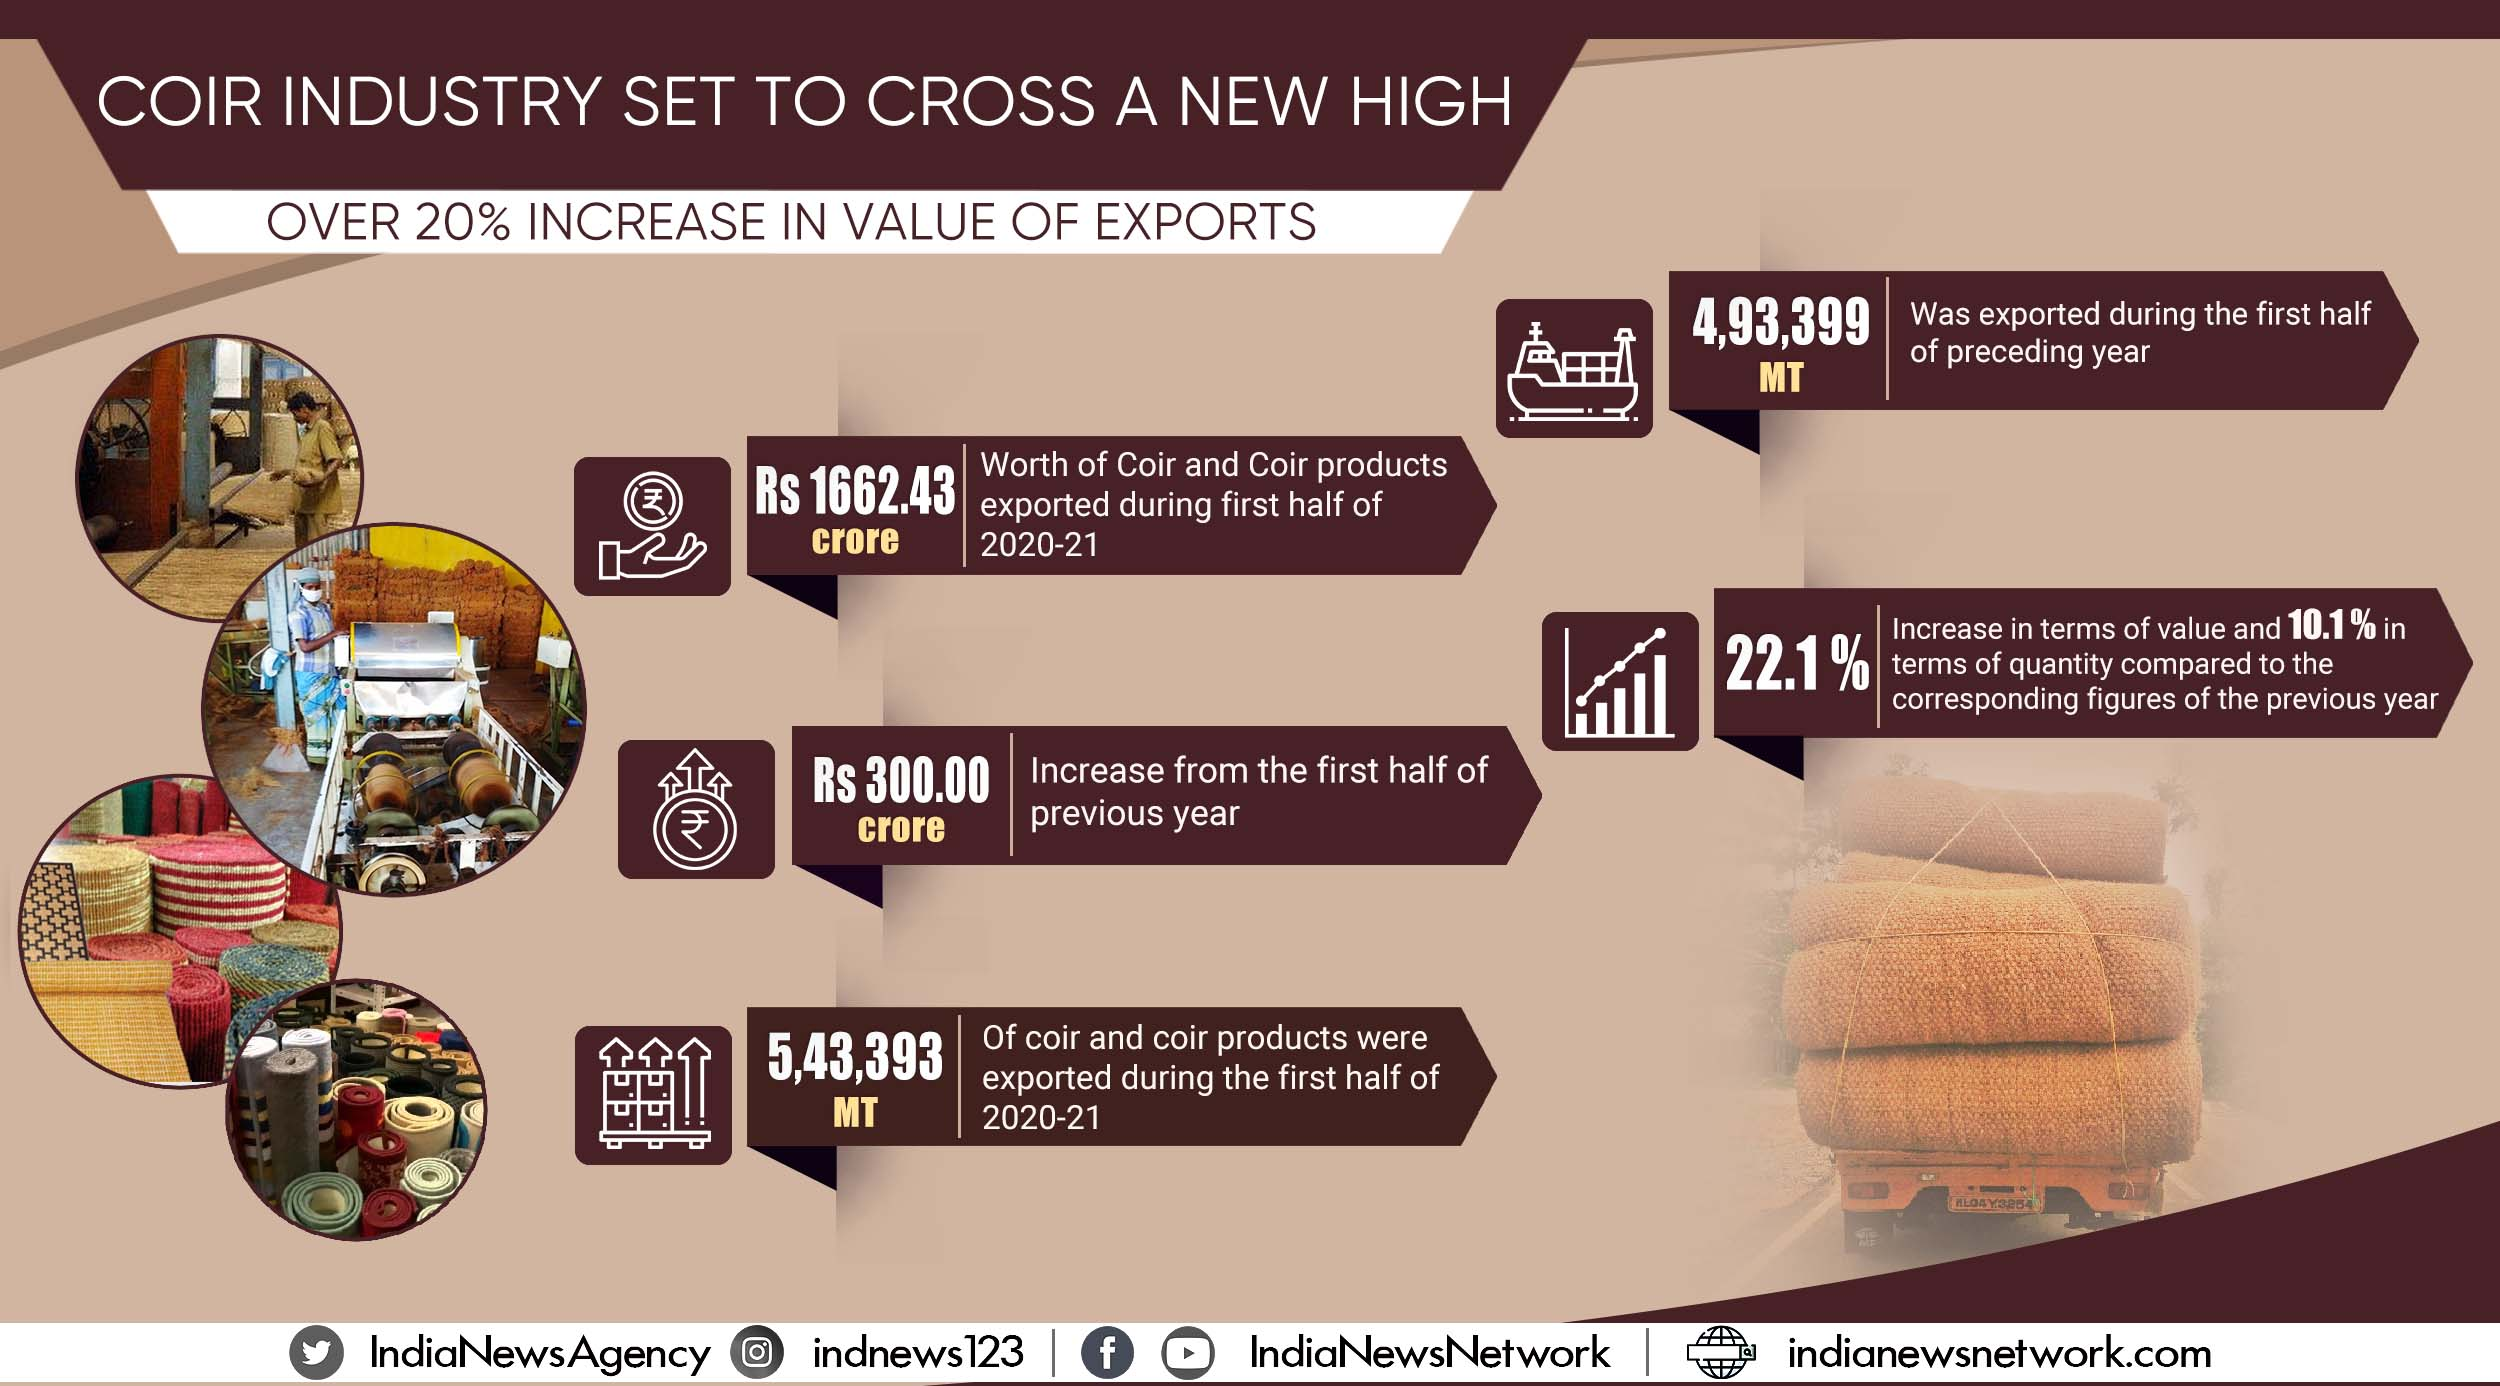 With growing exports and domestic consumption, coir industry set to touch new high